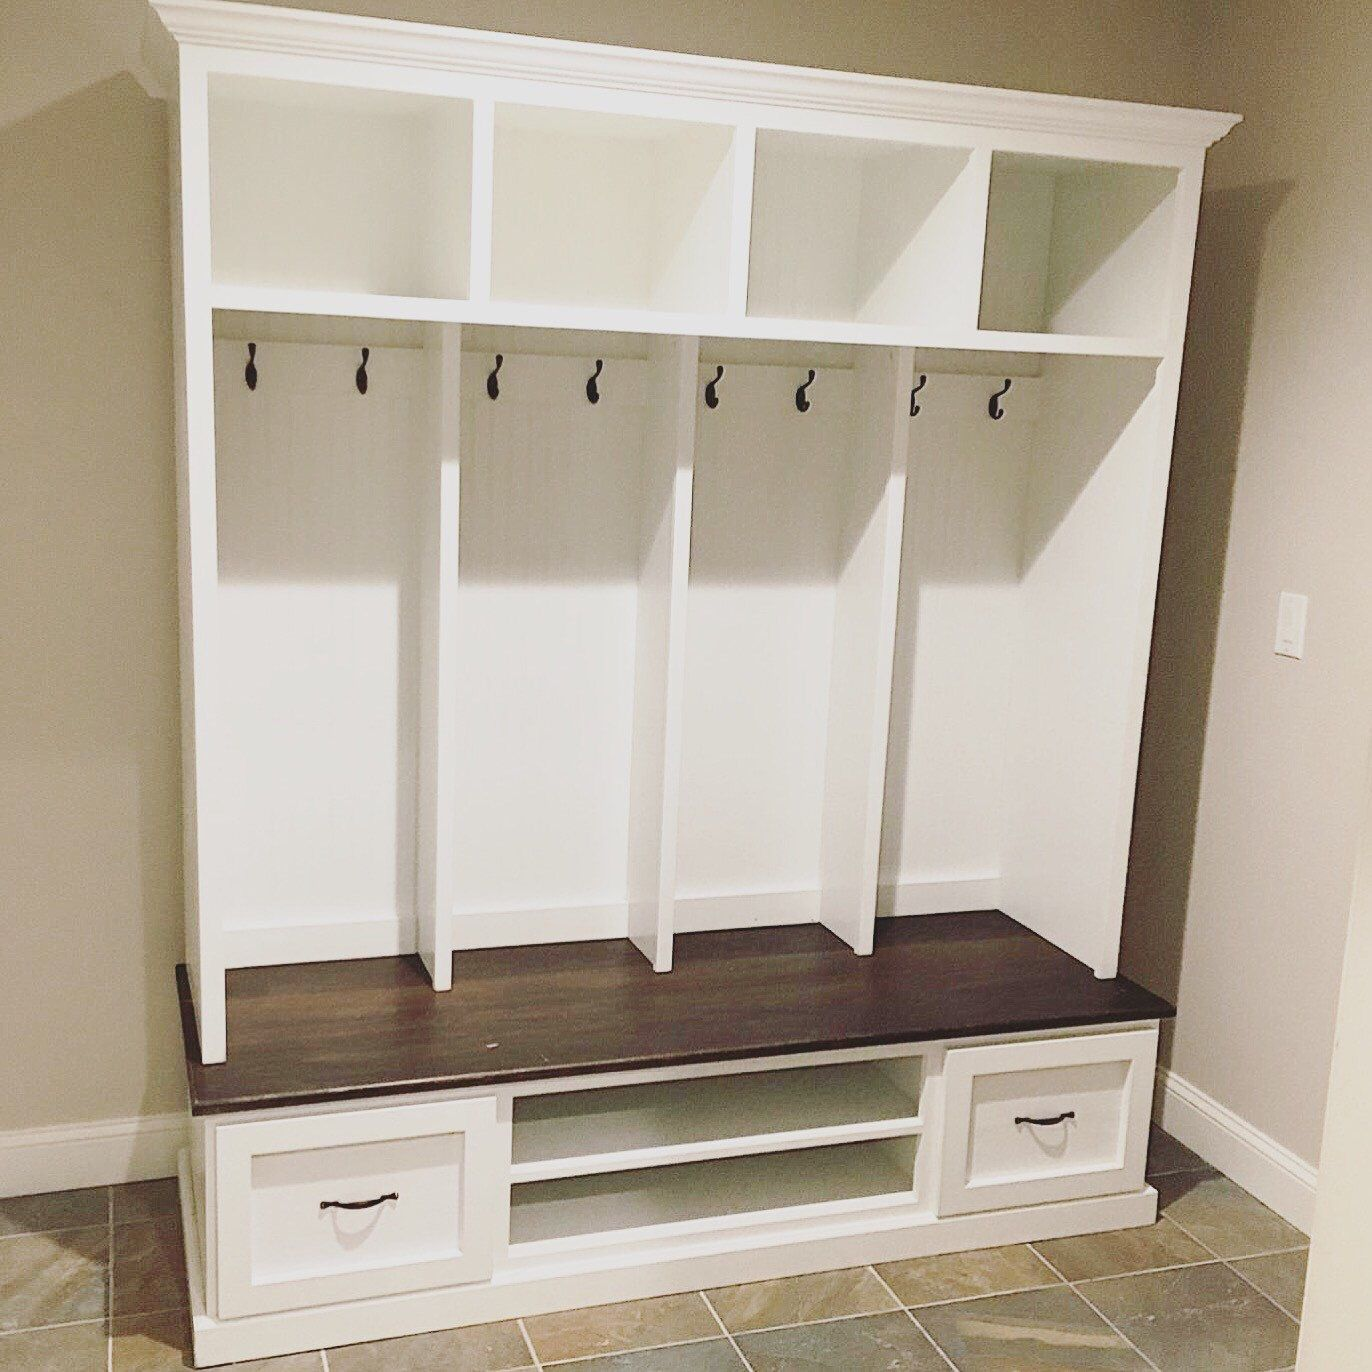 Ordinaire Mud Bench, Locker Unit, Hall Tree, Shoe Bench Made From Hardwood By  GriffinFurniture